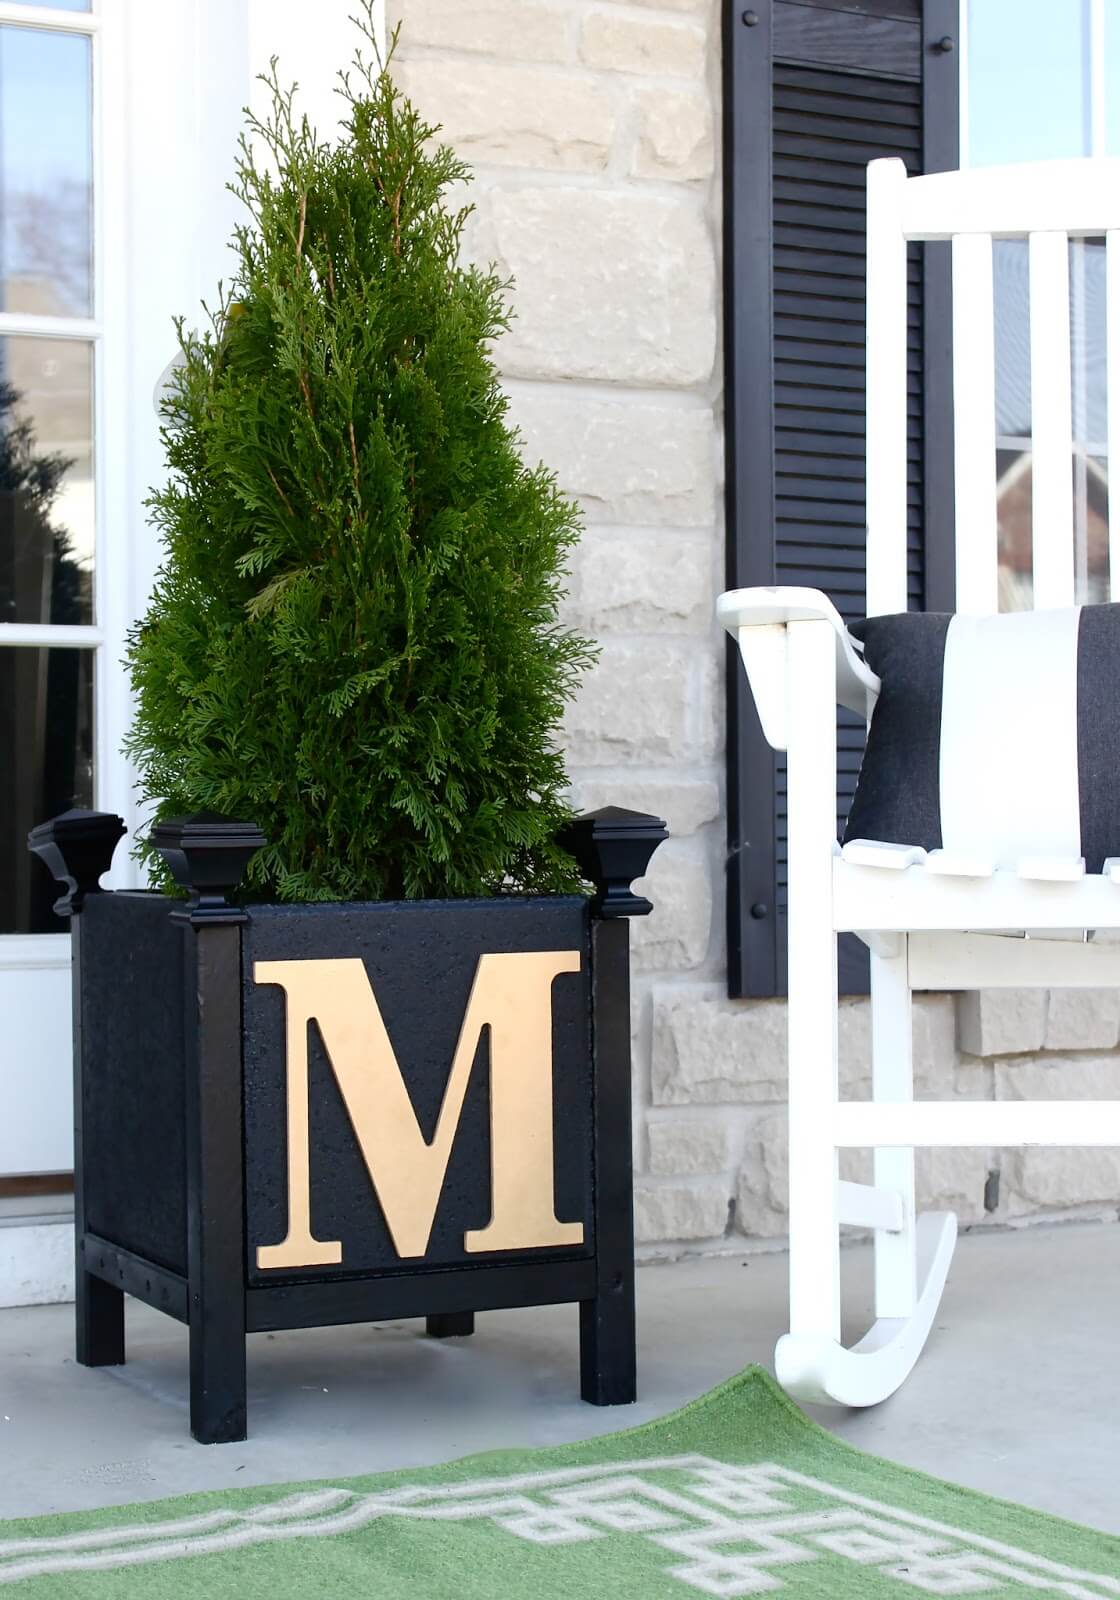 Customized Initial Concrete Planter DIY Project